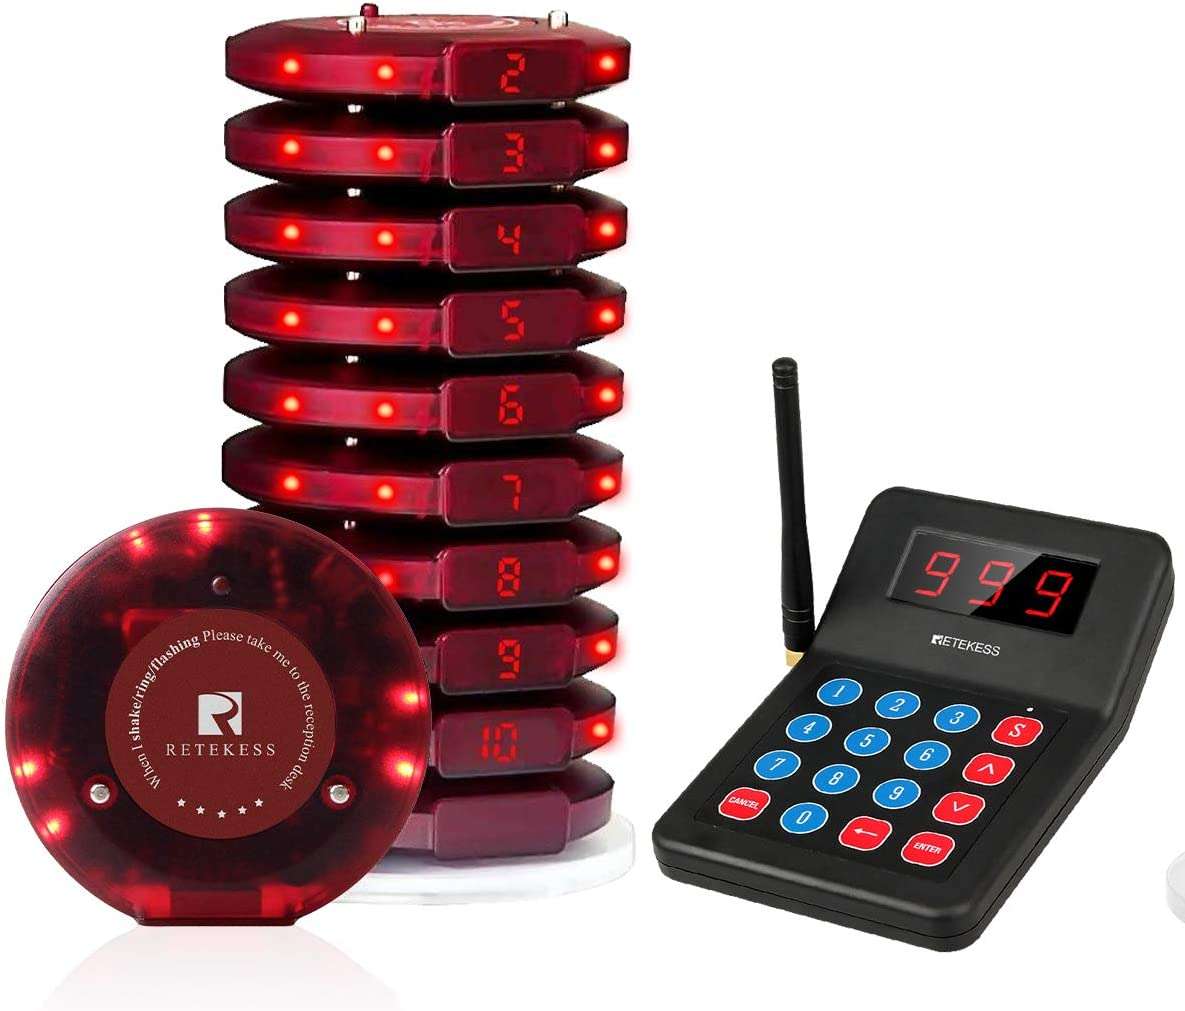 Retekess T119 Restaurant Pager System Long Range Check Calling Records Max 999 Pagers 2 Way Charge 10 Rechargeable Buzzers for Servers Nurses Church Hospital